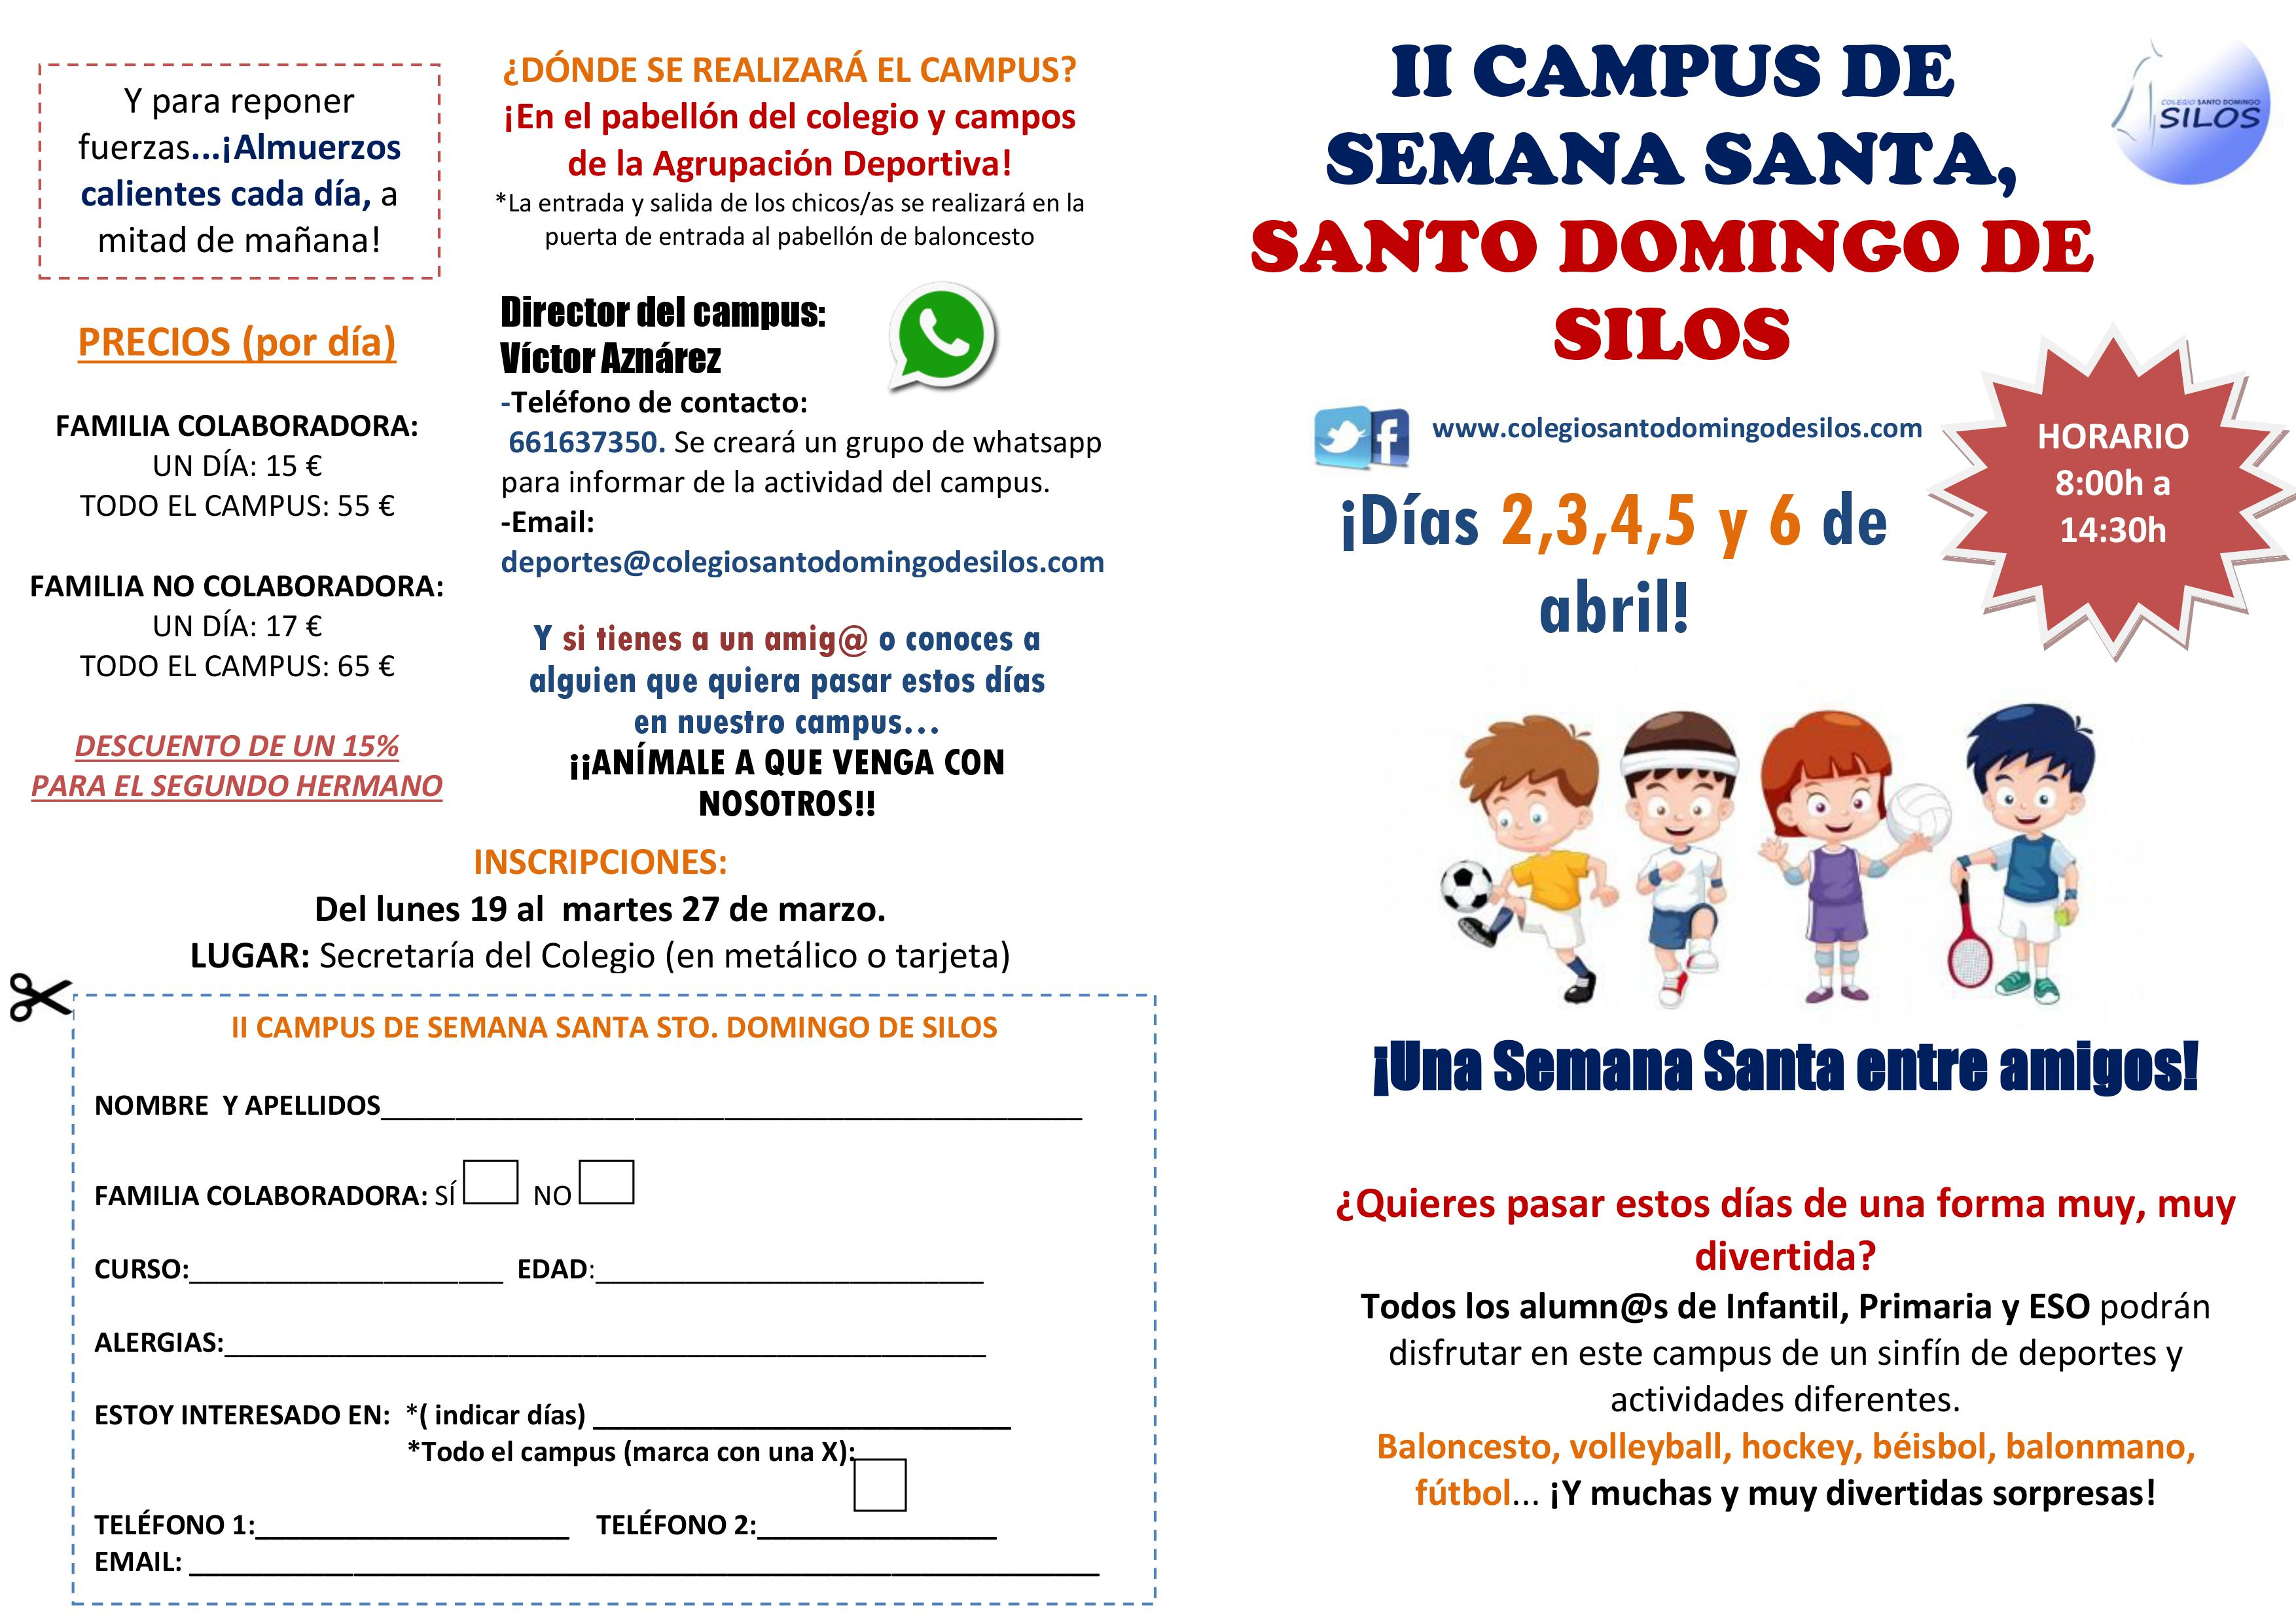 ¡Campus multideporte!